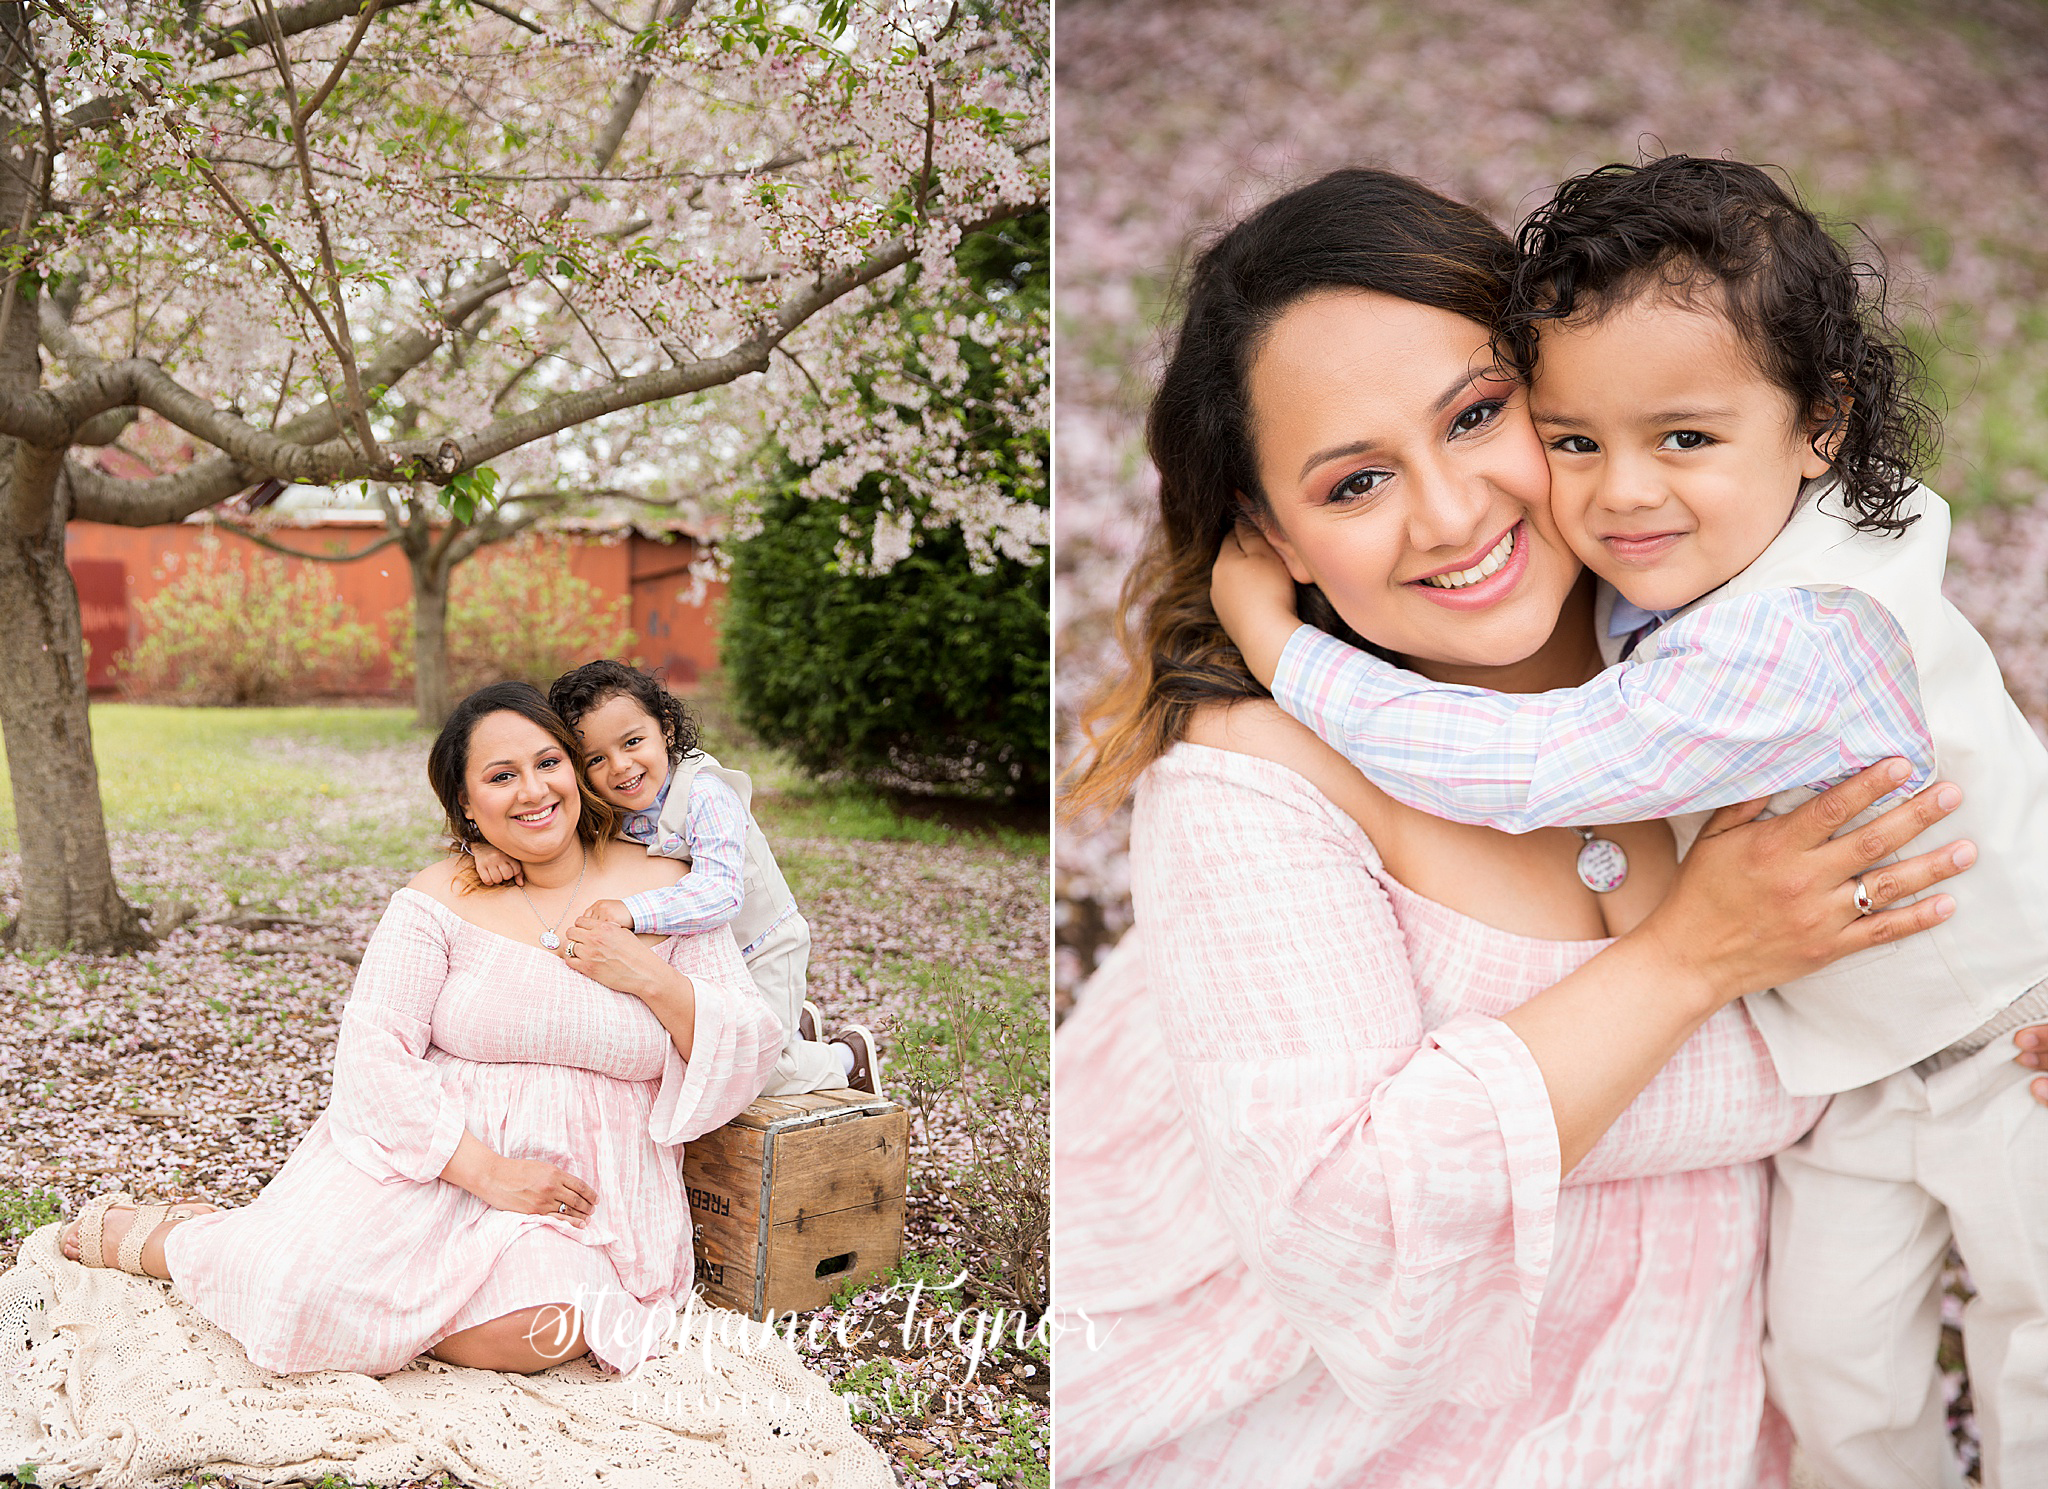 Stephanie Tignor Photography | Fredericksburg VA Family Photographer | Warrenton VA Family Photographer | Stafford VA Family Photographer | Family Photographer | Fairfax VA Family Photographer | Spotsylvania VA Family Photographer | Virginia Family Photographer | Mommy and Me session, mommy and me, cherry blossom session, cherry blossoms